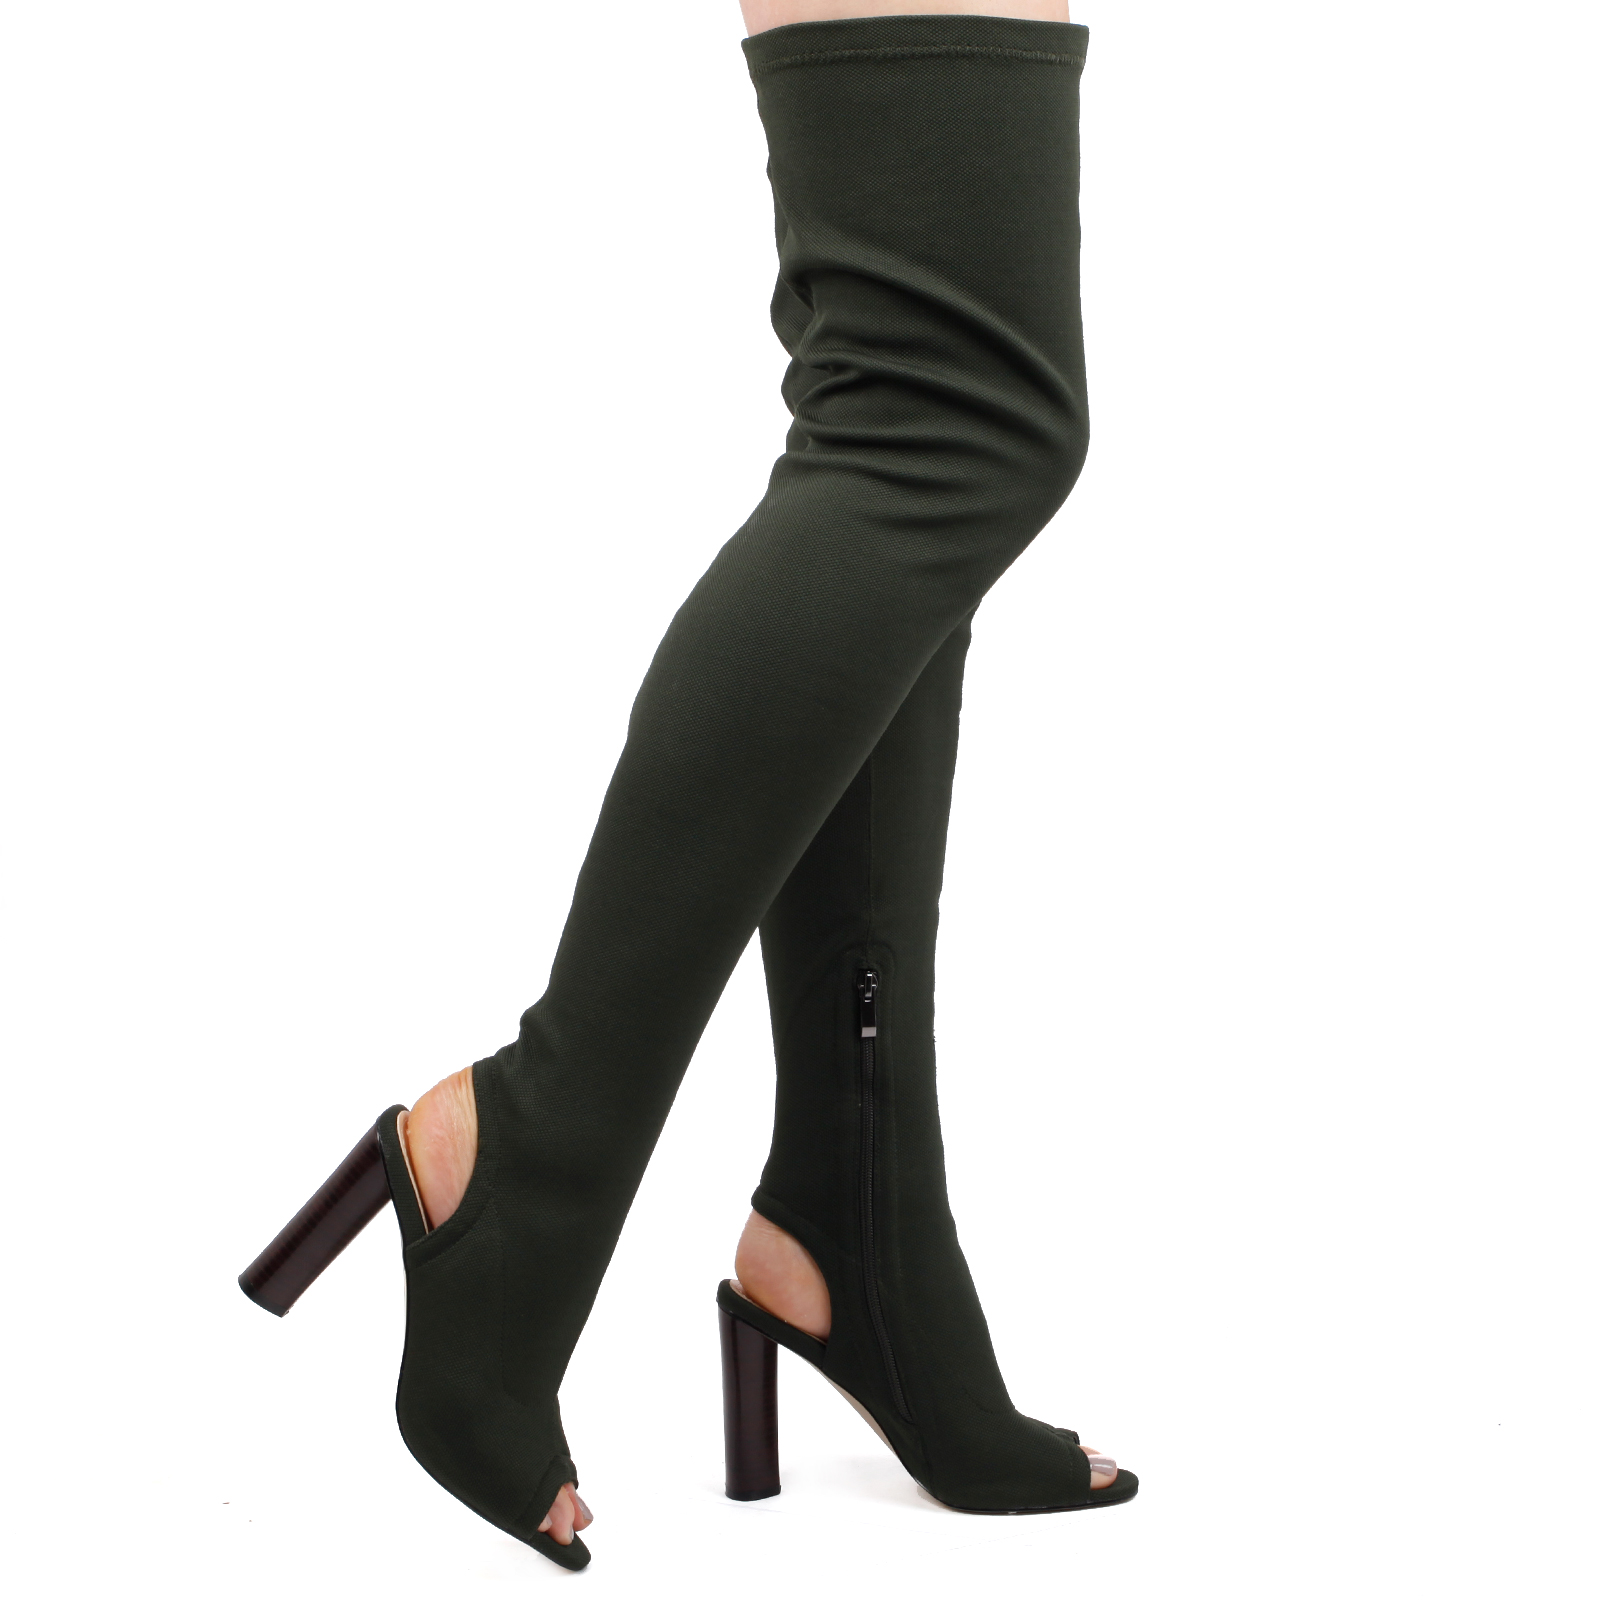 Rivea Cut Out Heel, Open Toe Thigh High Boots In Khaki Knit Image 1